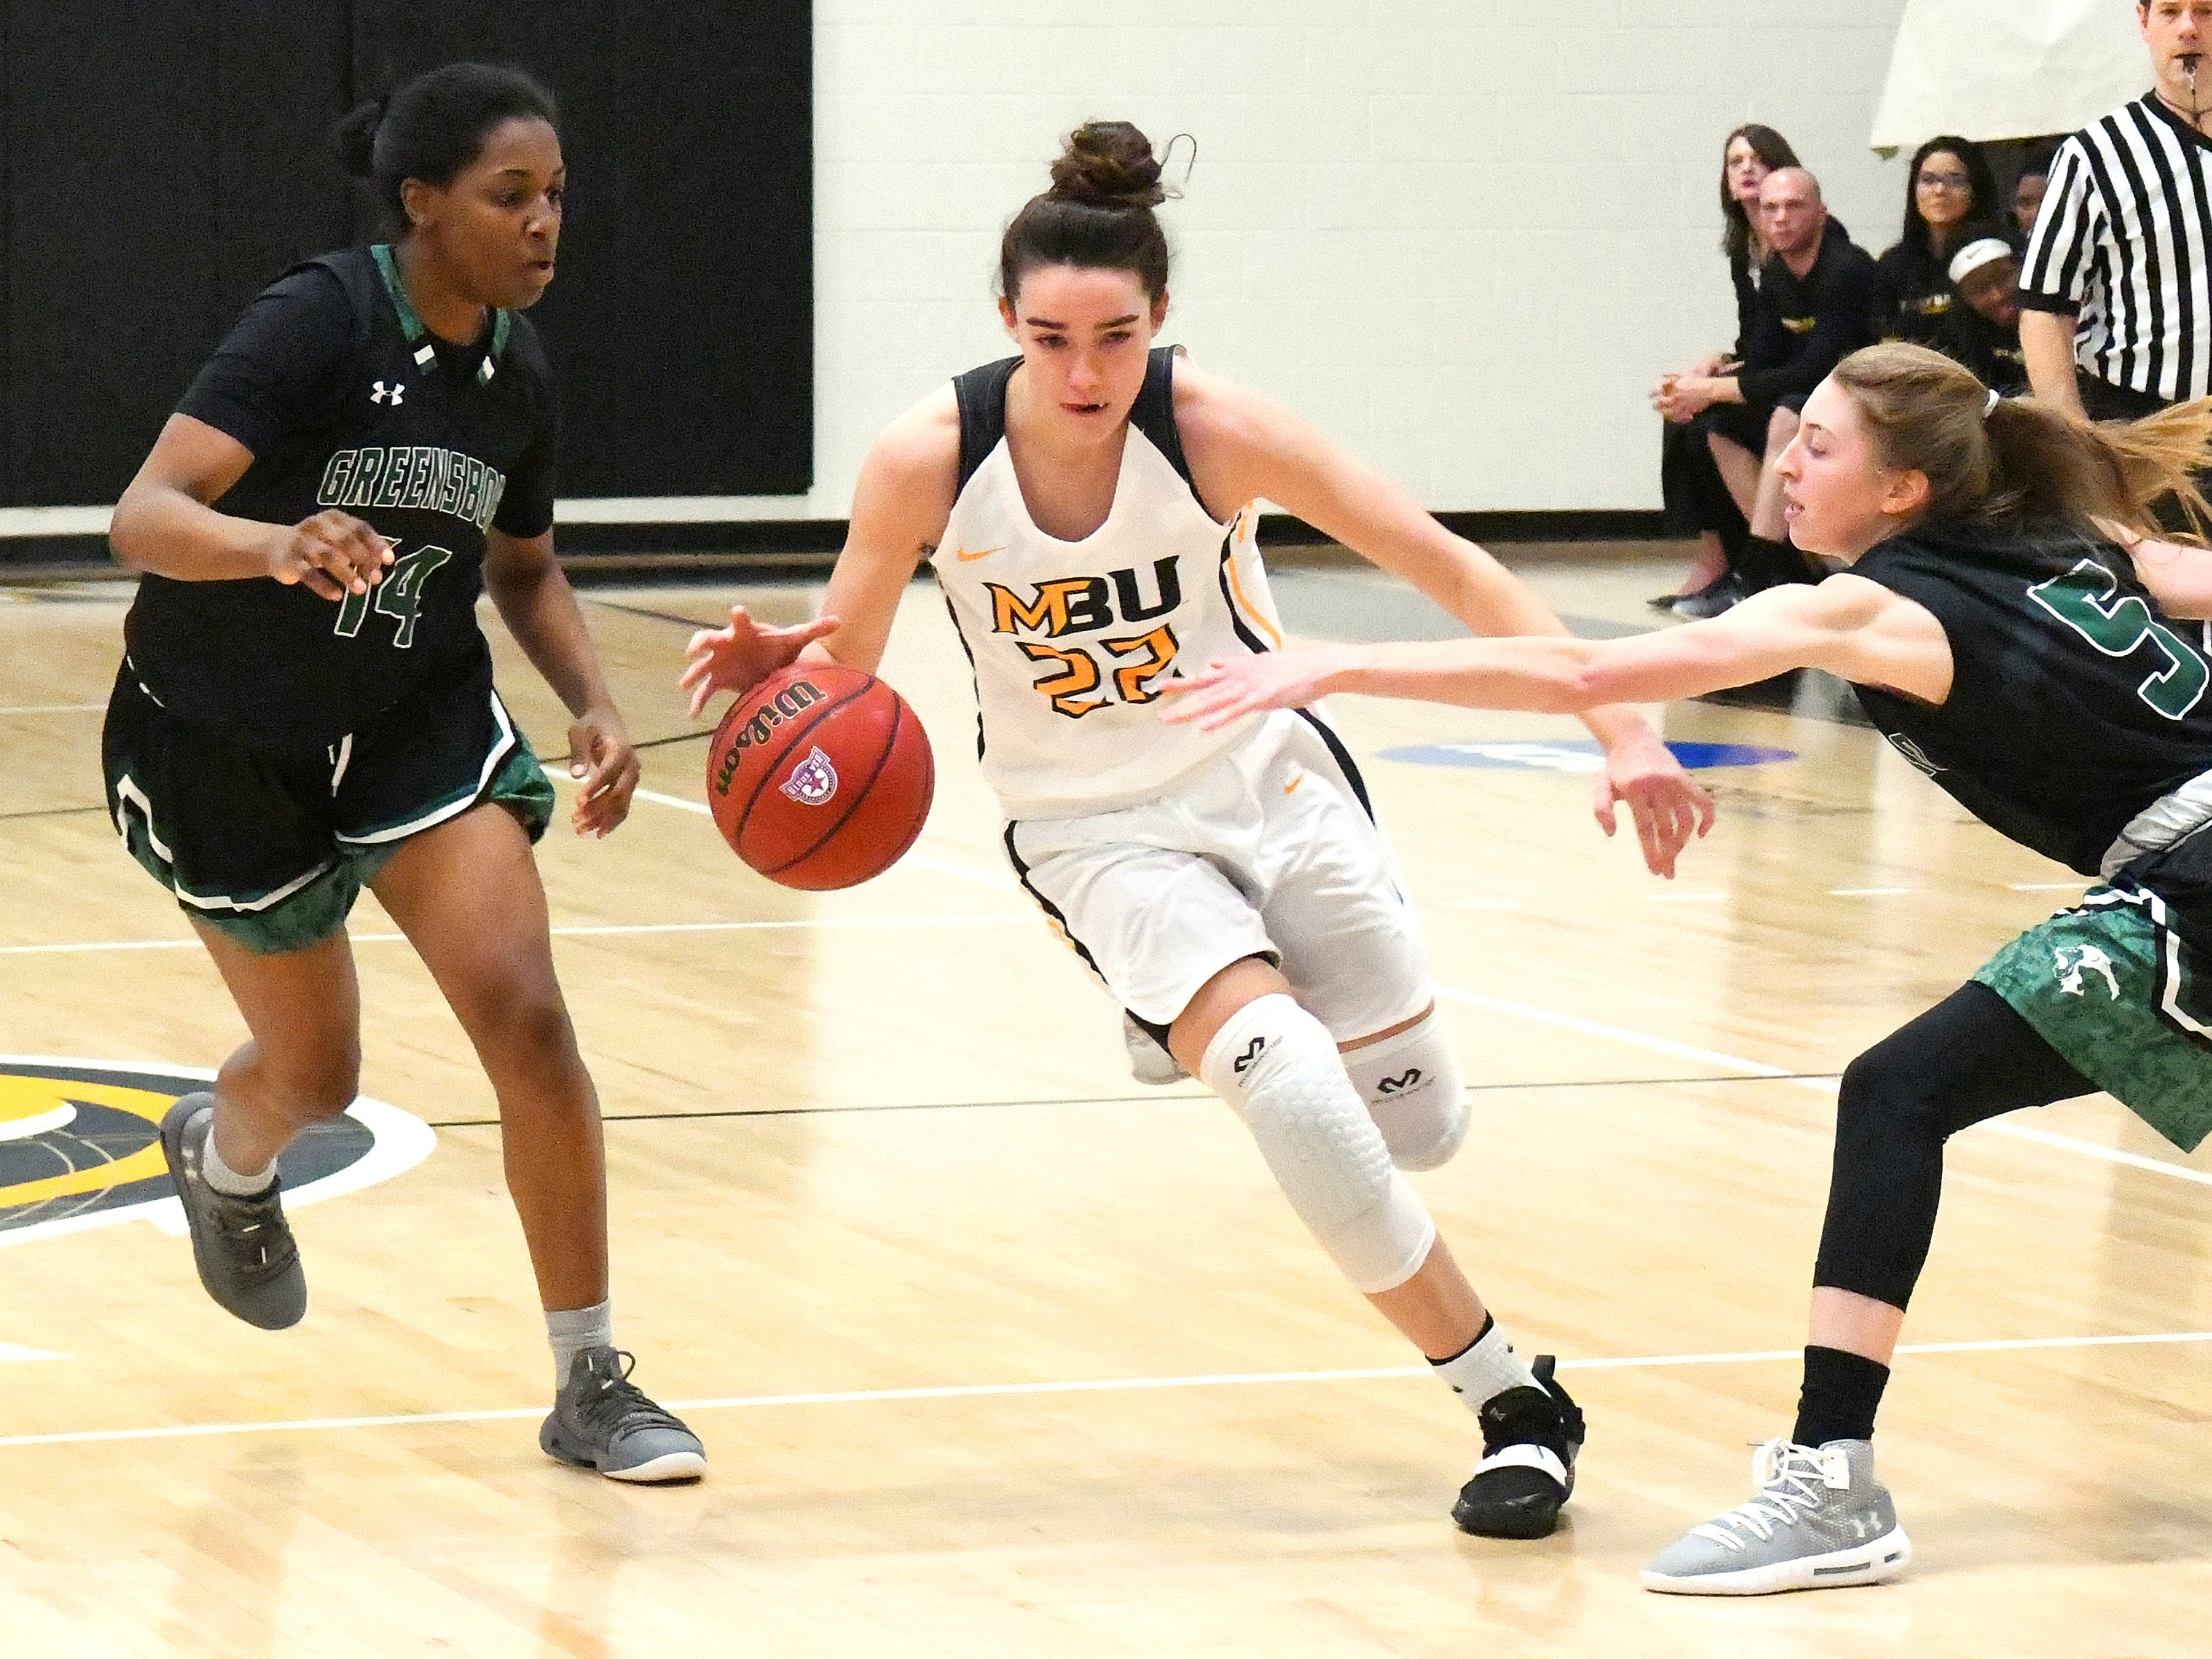 Mary Baldwin's Leah Calhoun takes the ball between Greensboro's Sabria Joseph (#14) and Katie Lewis (#5) during a USA South conference game played in Staunton on Jan. 9, 2019.